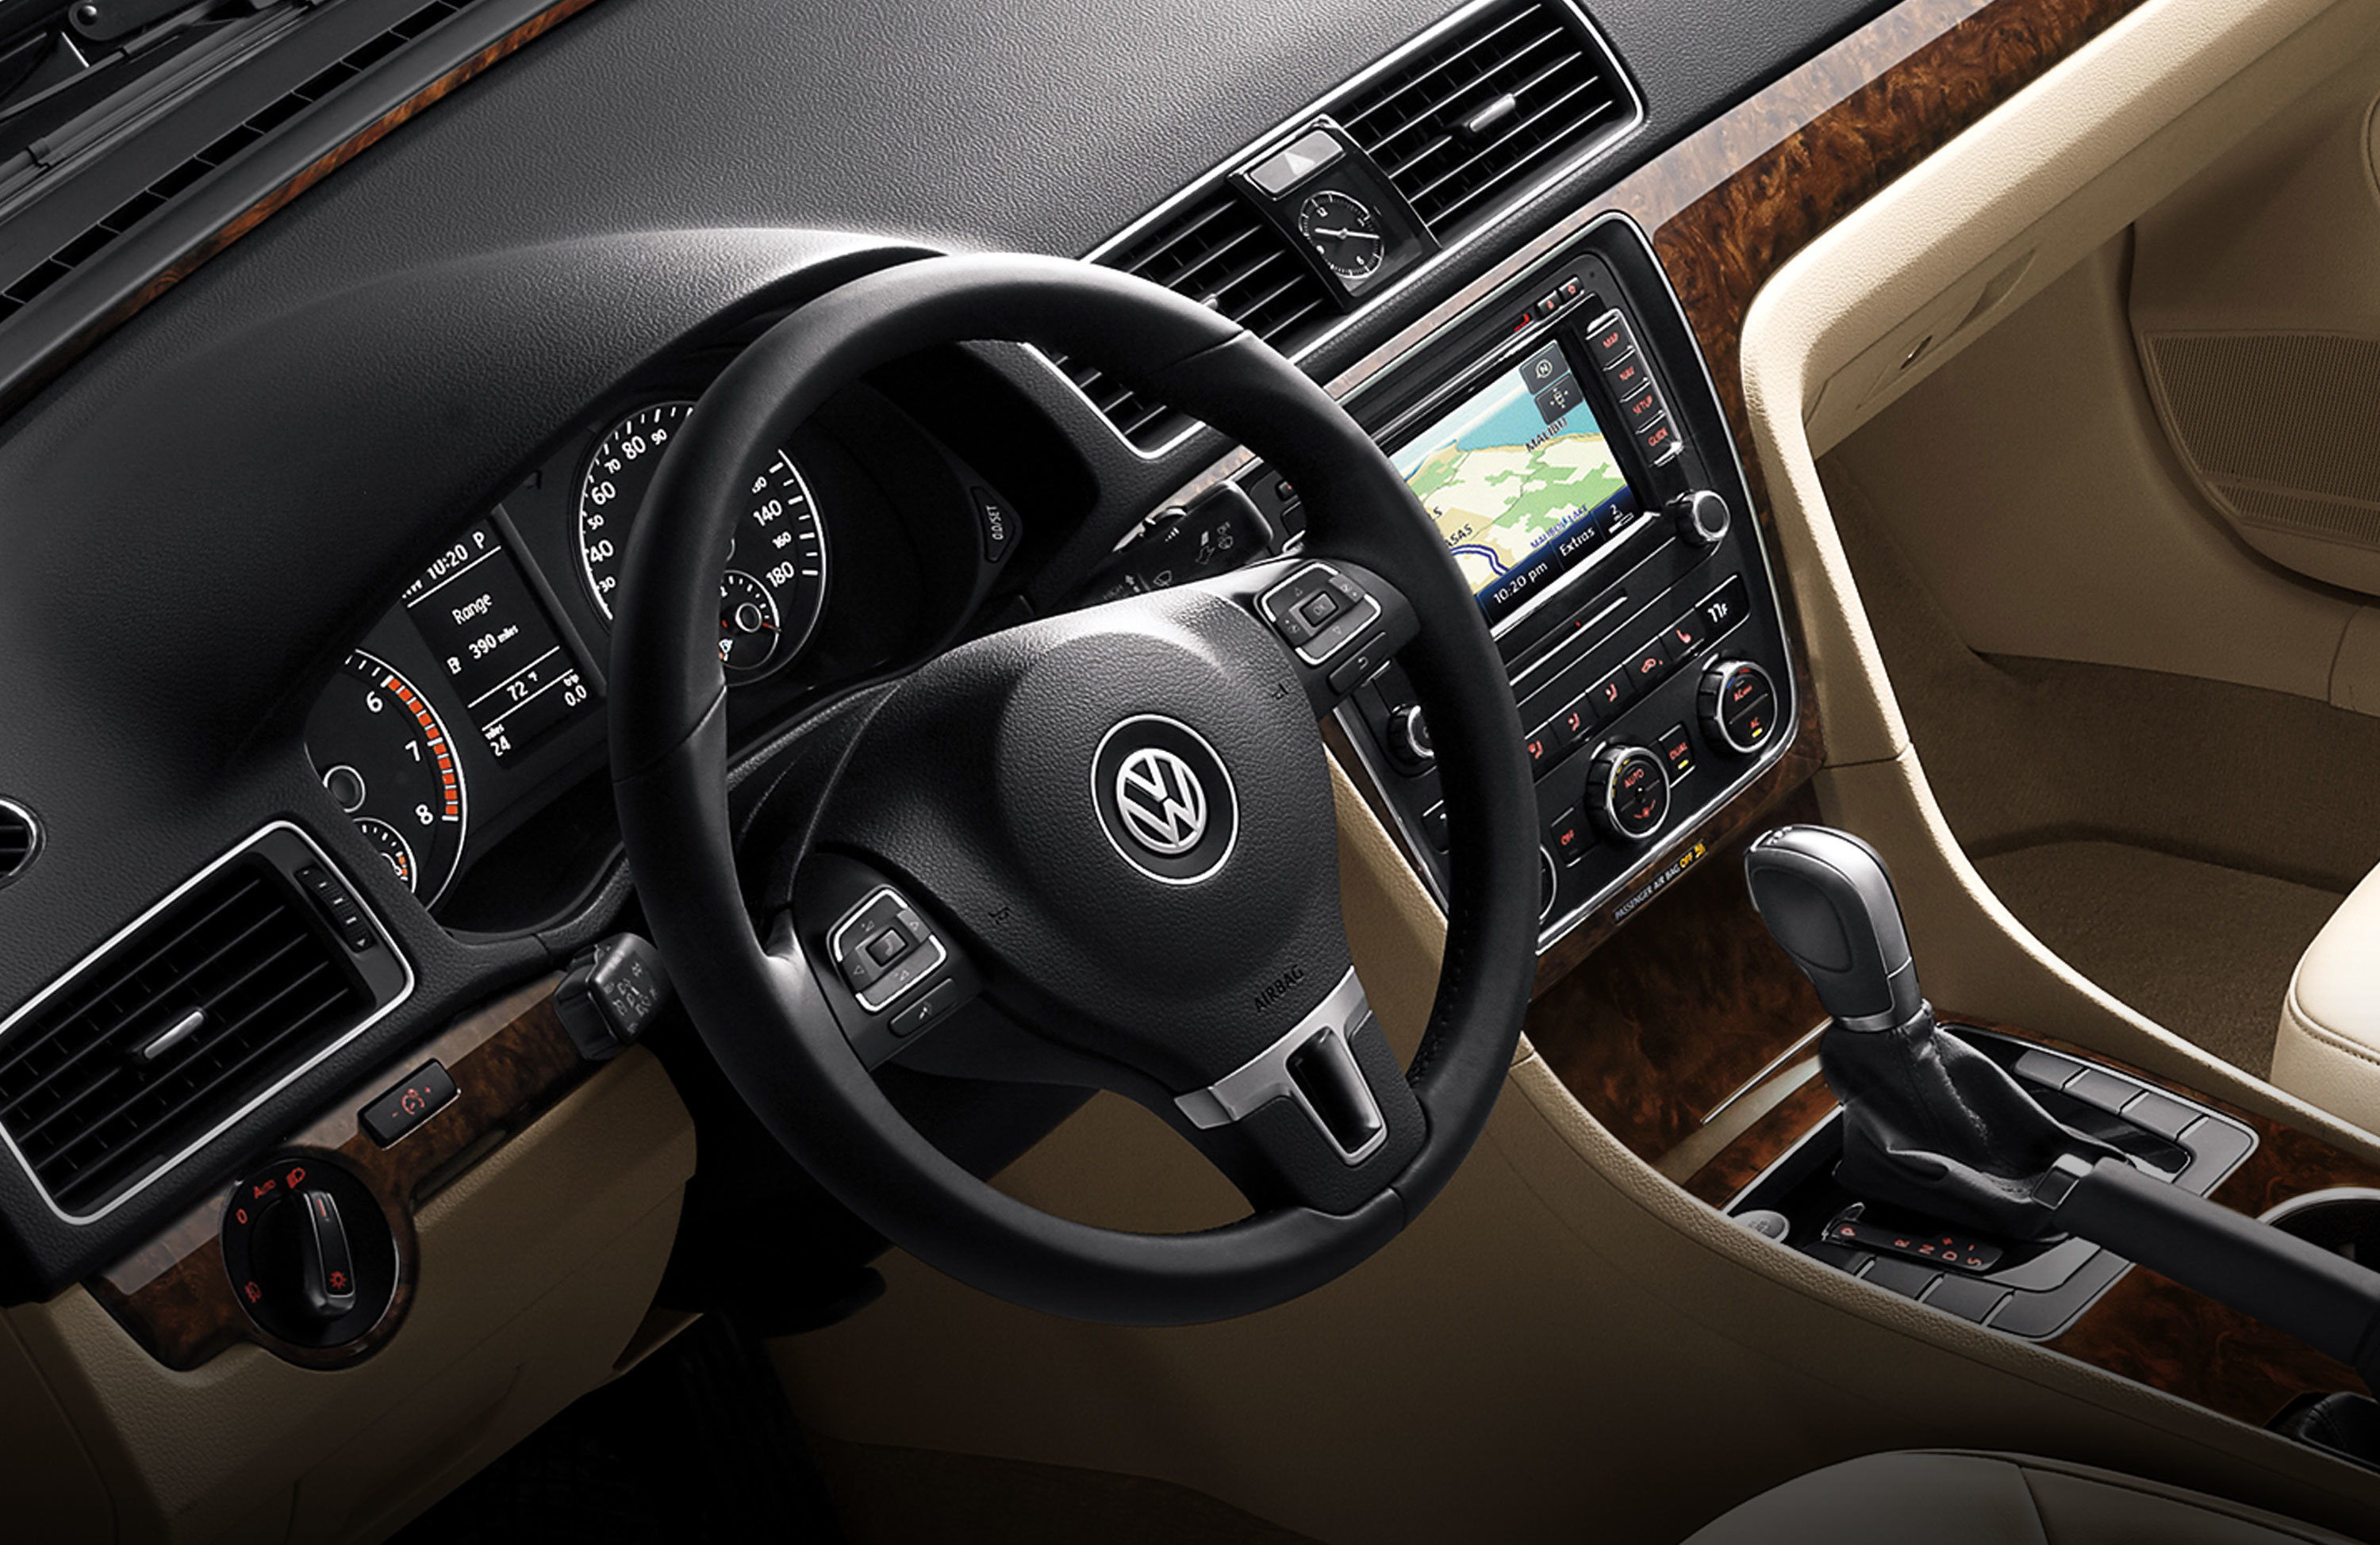 Interior of 2015 Passat